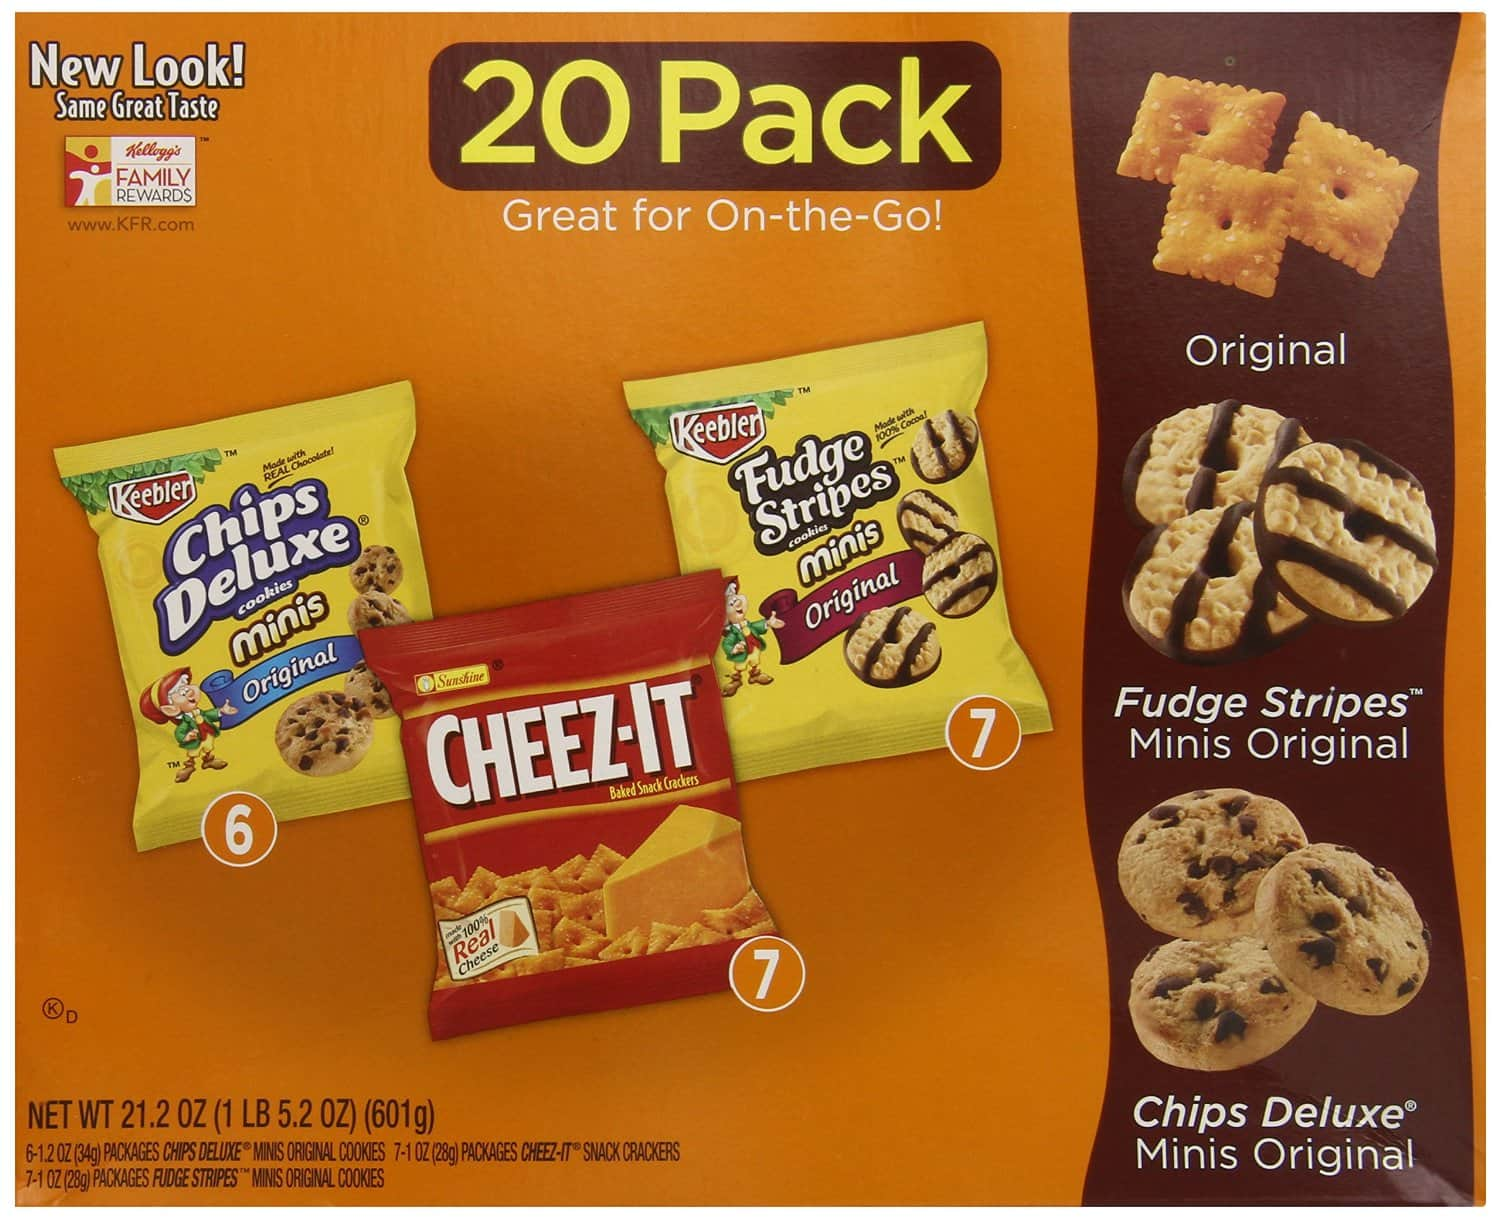 20-Pack Keebler Cookie & Cheez-It Variety Pack (21.2oz total)  $5.50 + Free Shipping